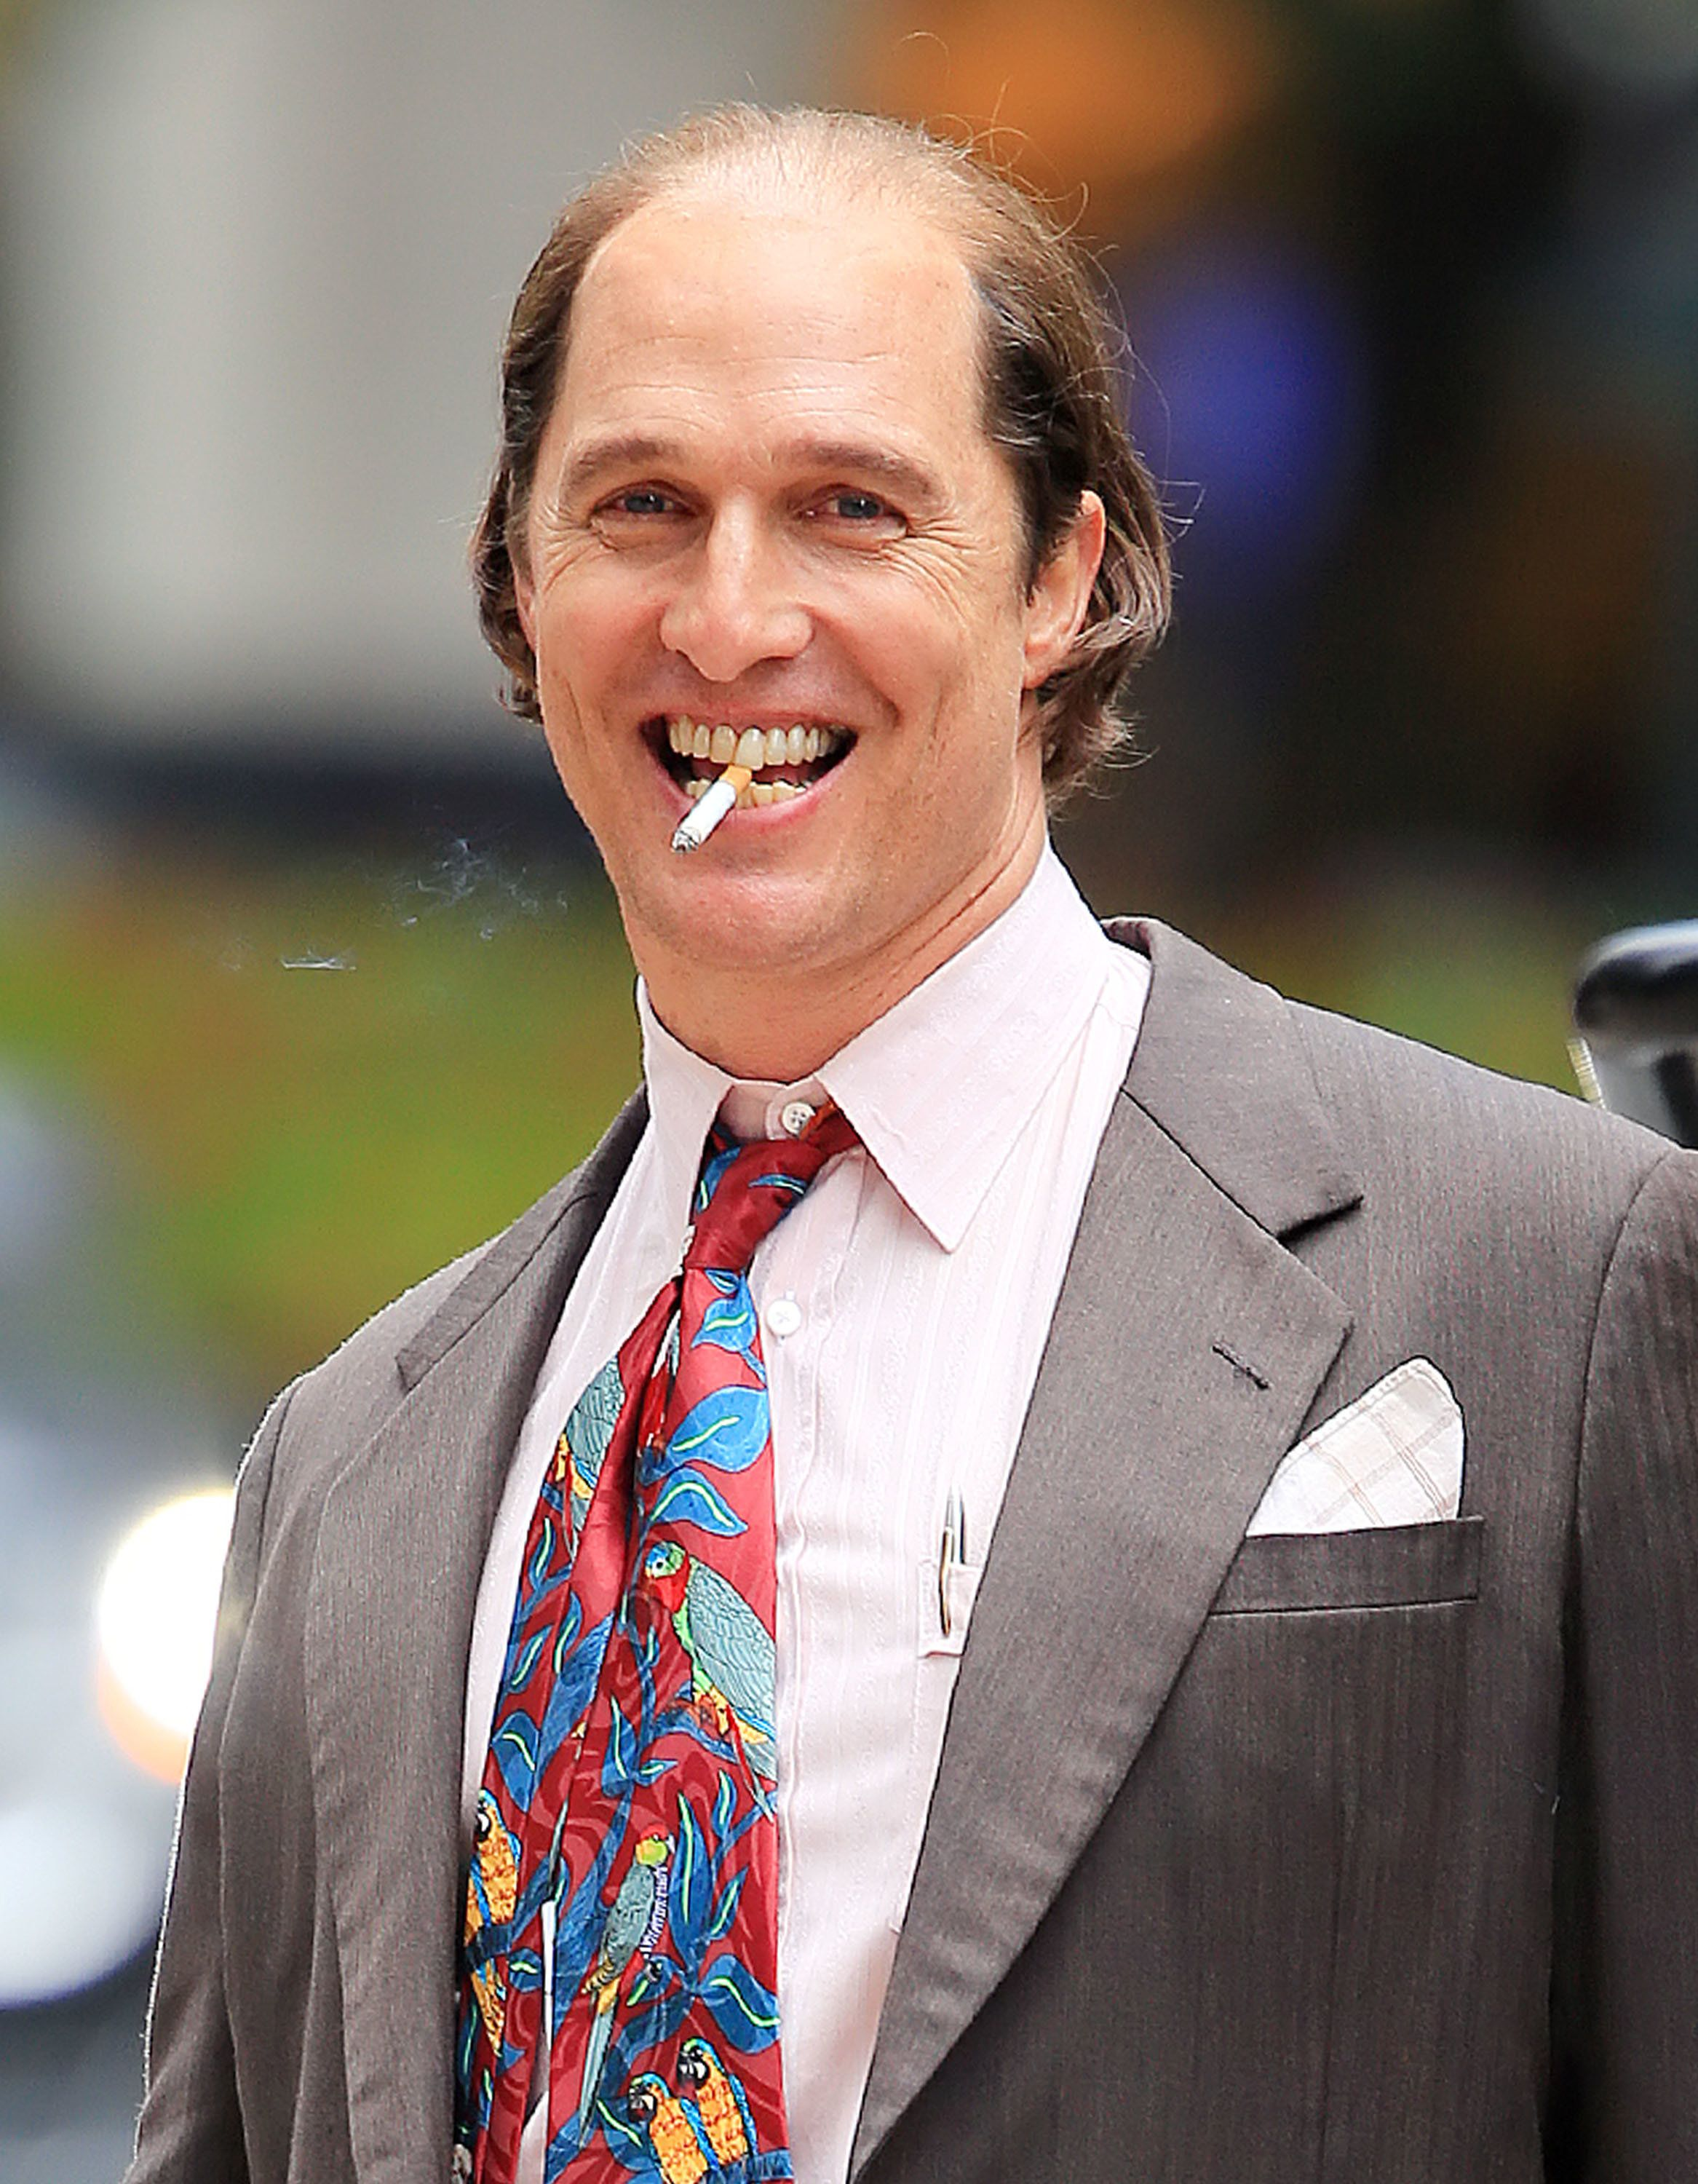 Matthew McConaughey has gained a lot of weight and a beer belly in transformation for his role on the NY set of 'Gold'. He is also seen smoking as a part of his new role.